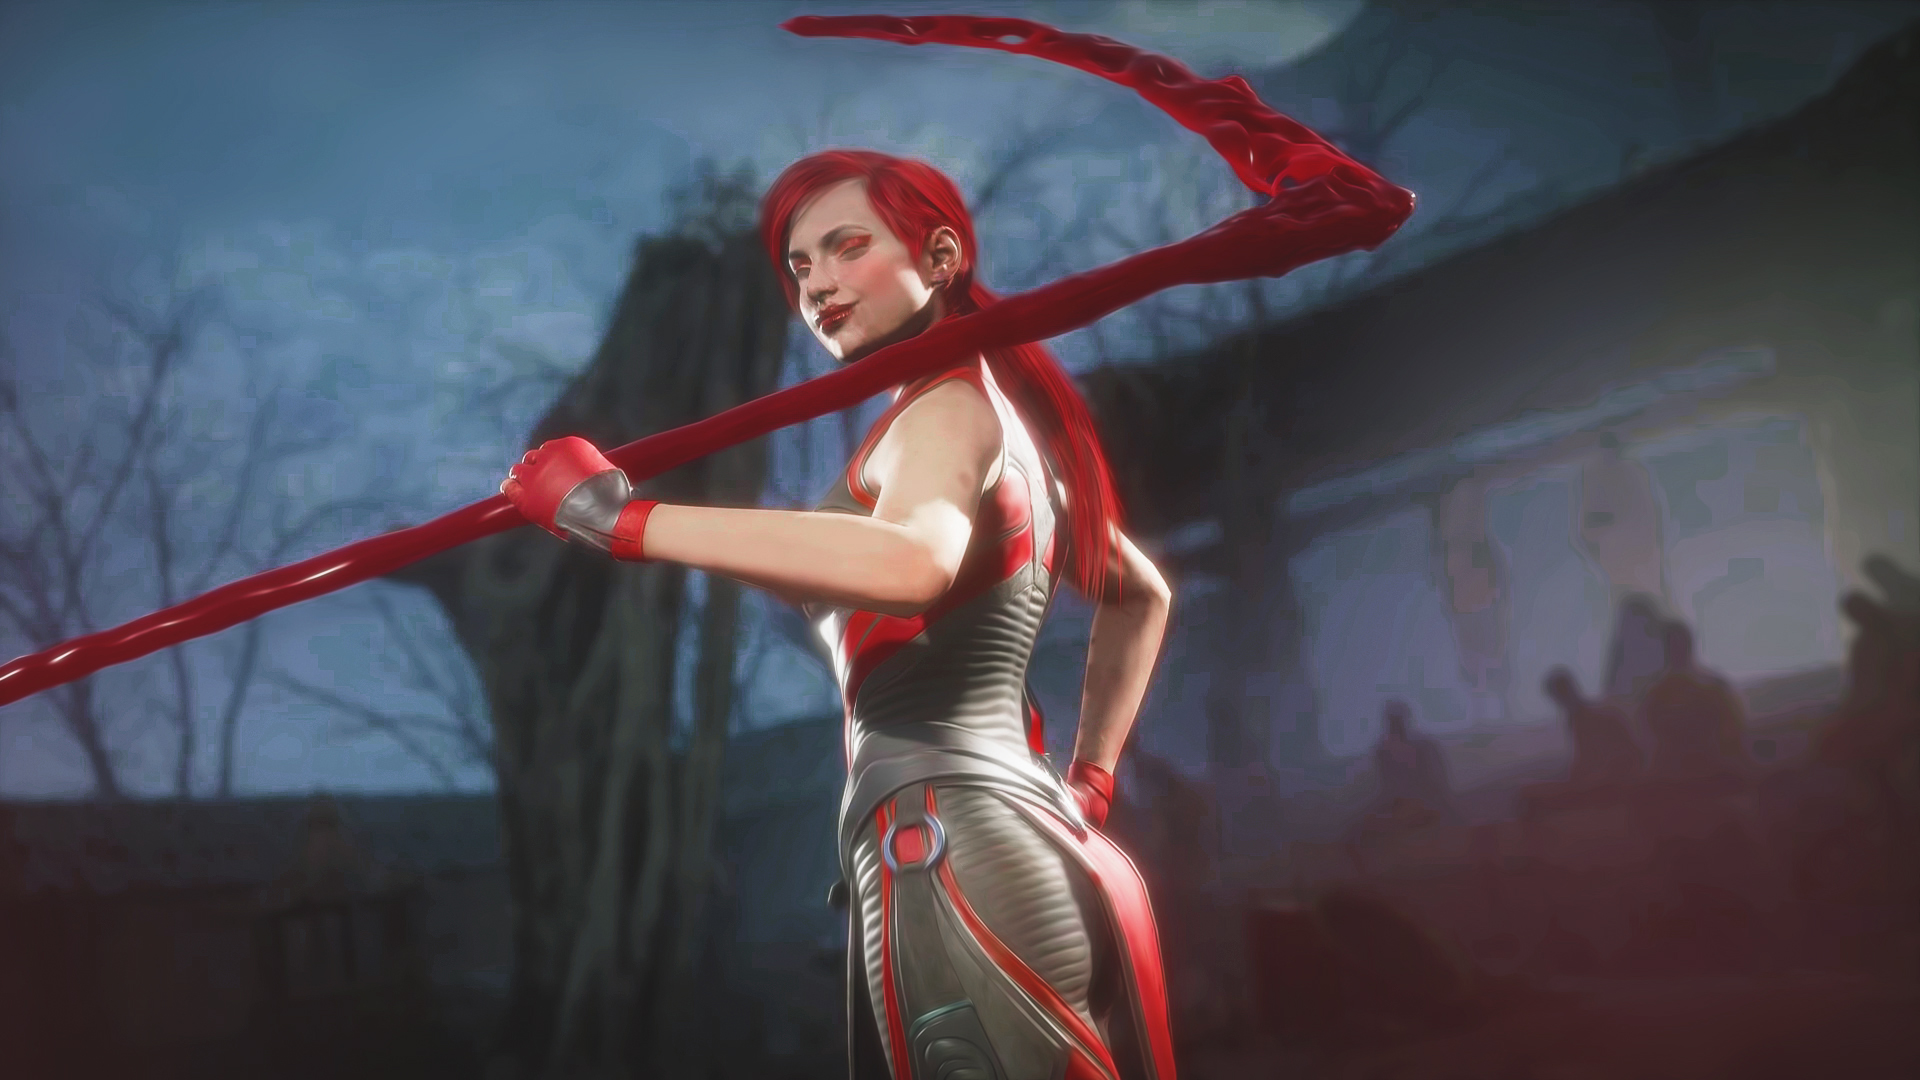 General 1920x1080 Skarlet Mortal Kombat mk11 video game girls